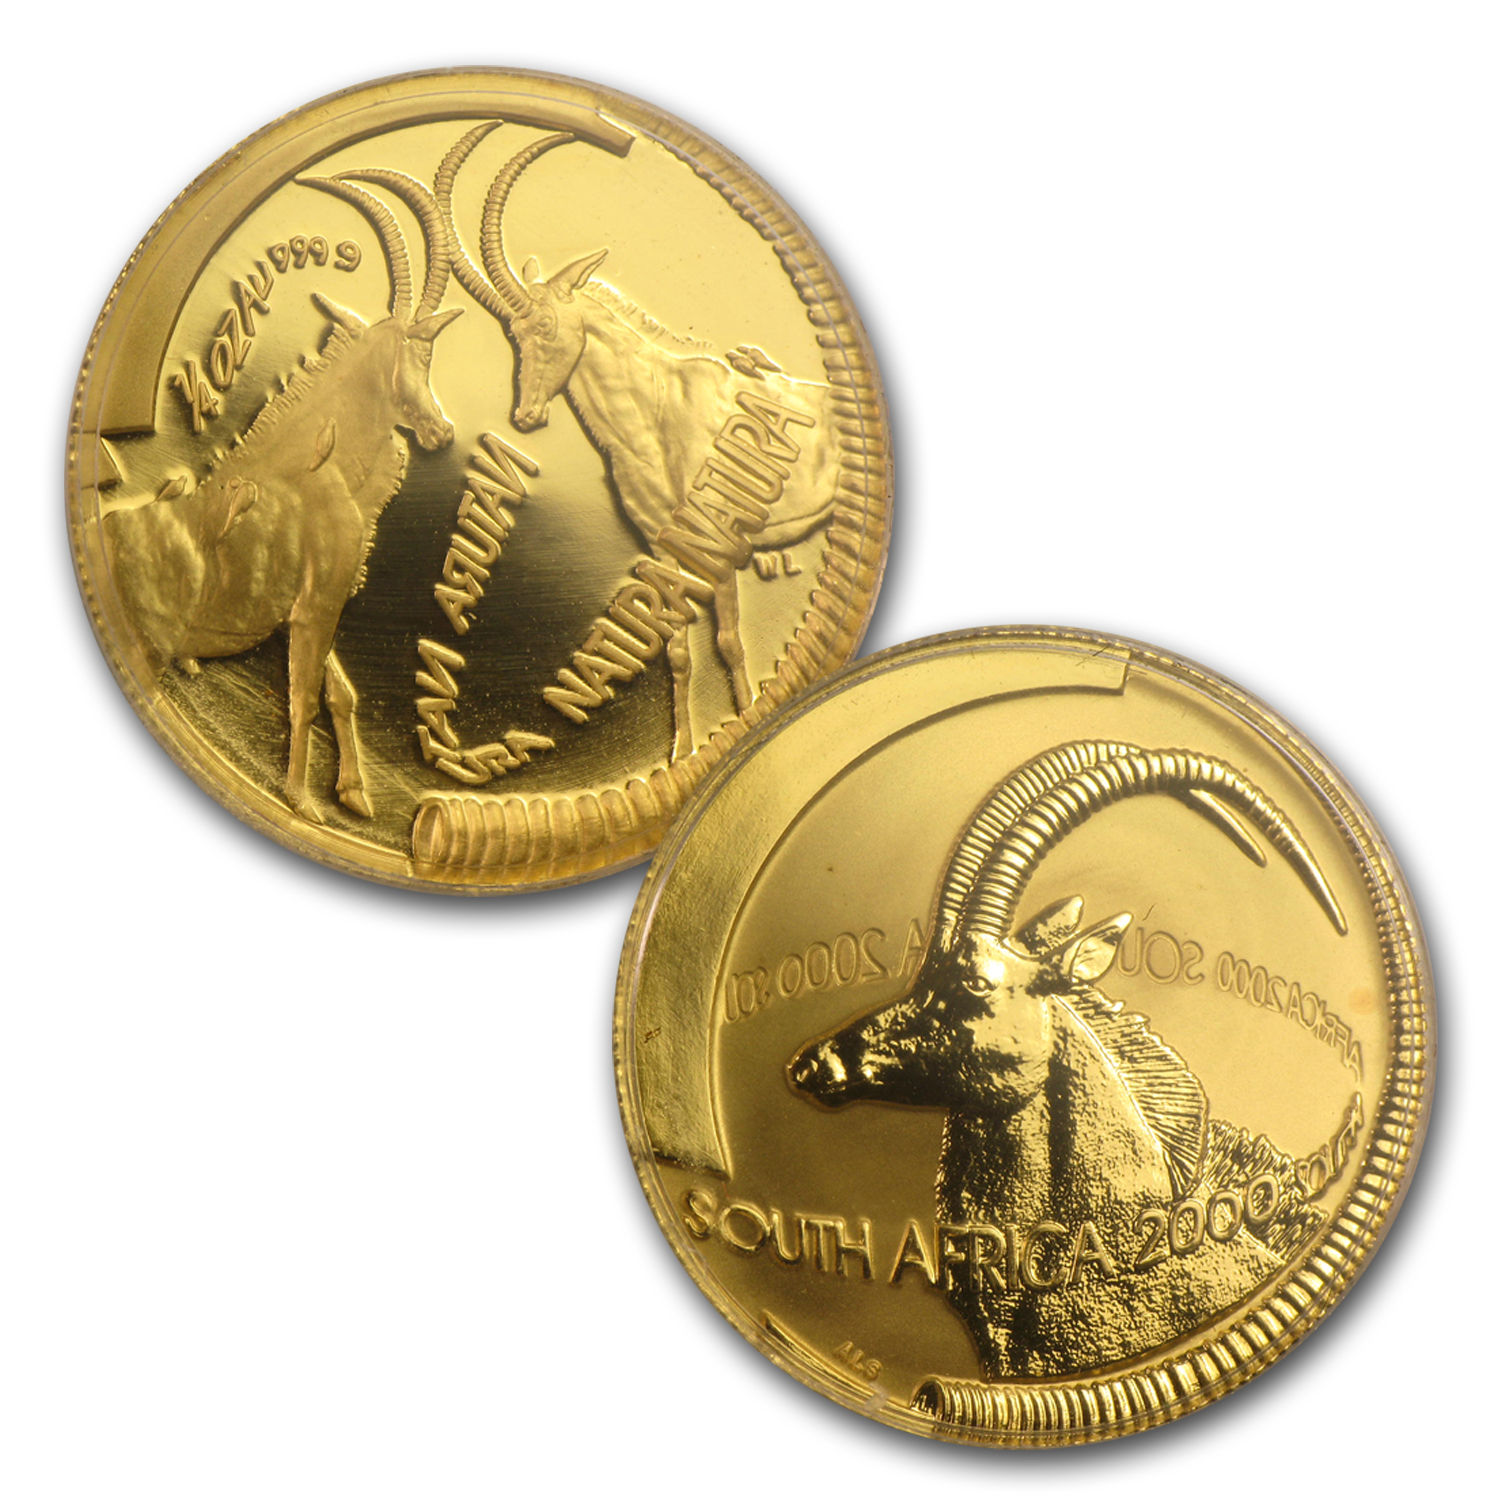 2000 South Africa 3-Coin Gold Natura Sable (Antelope) Proof Set